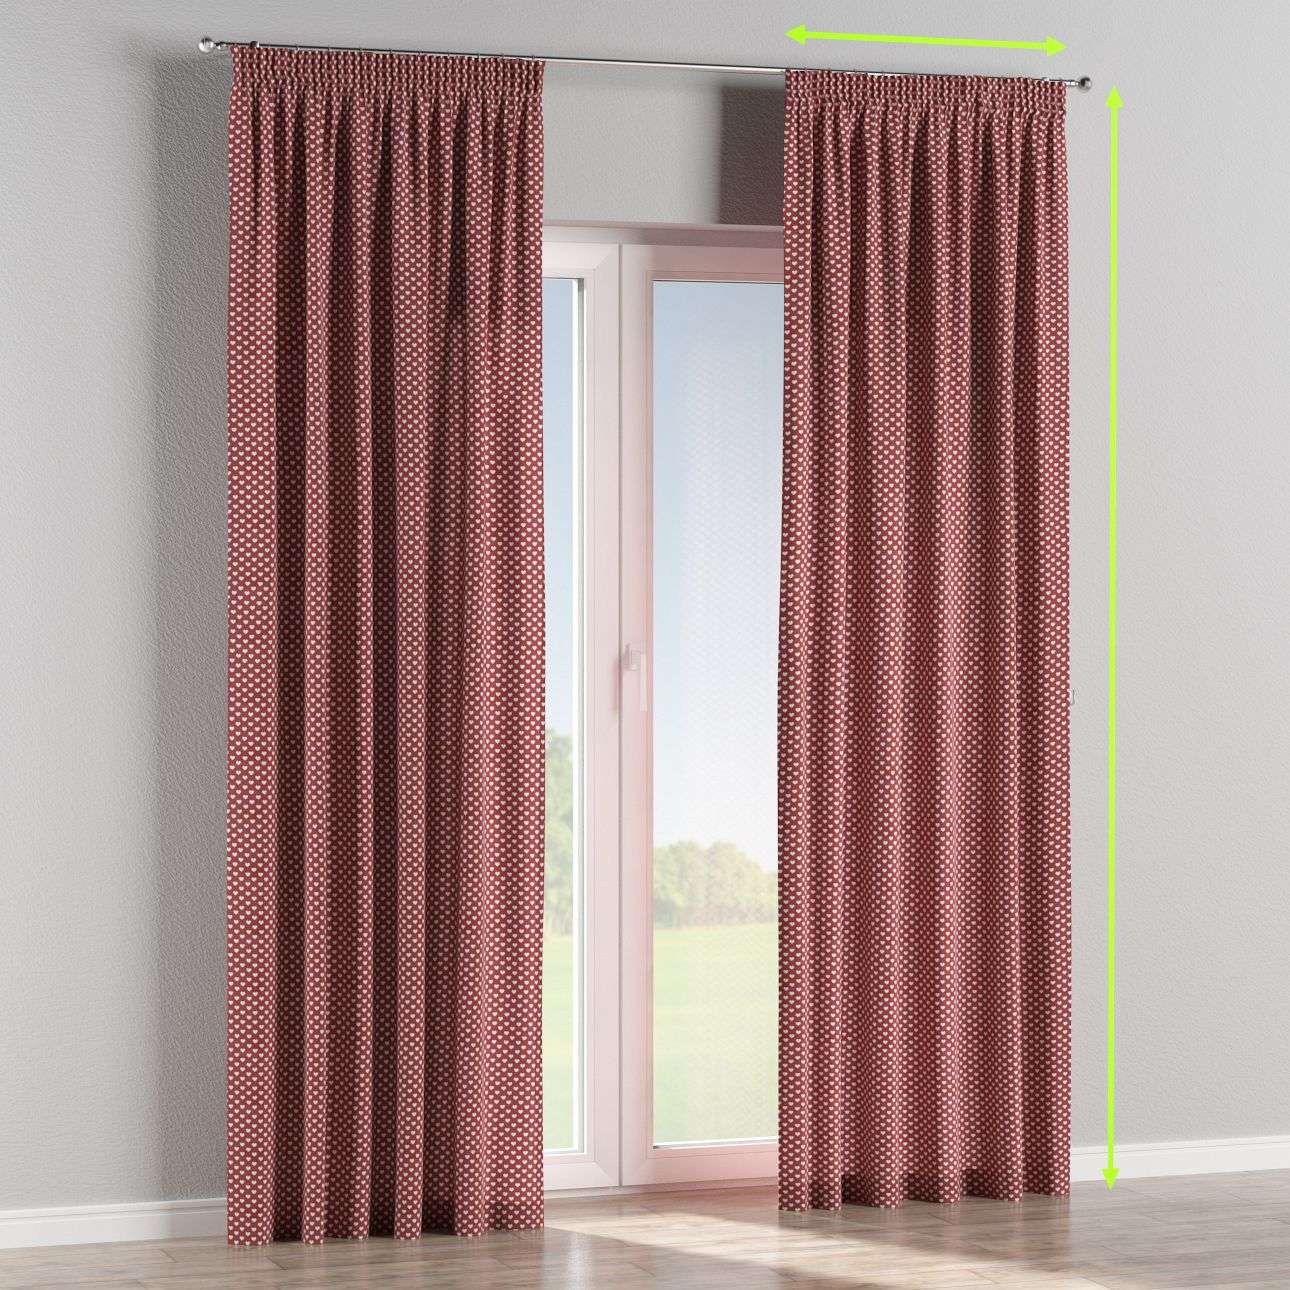 Pencil pleat curtains in collection Nordic, fabric: 630-40